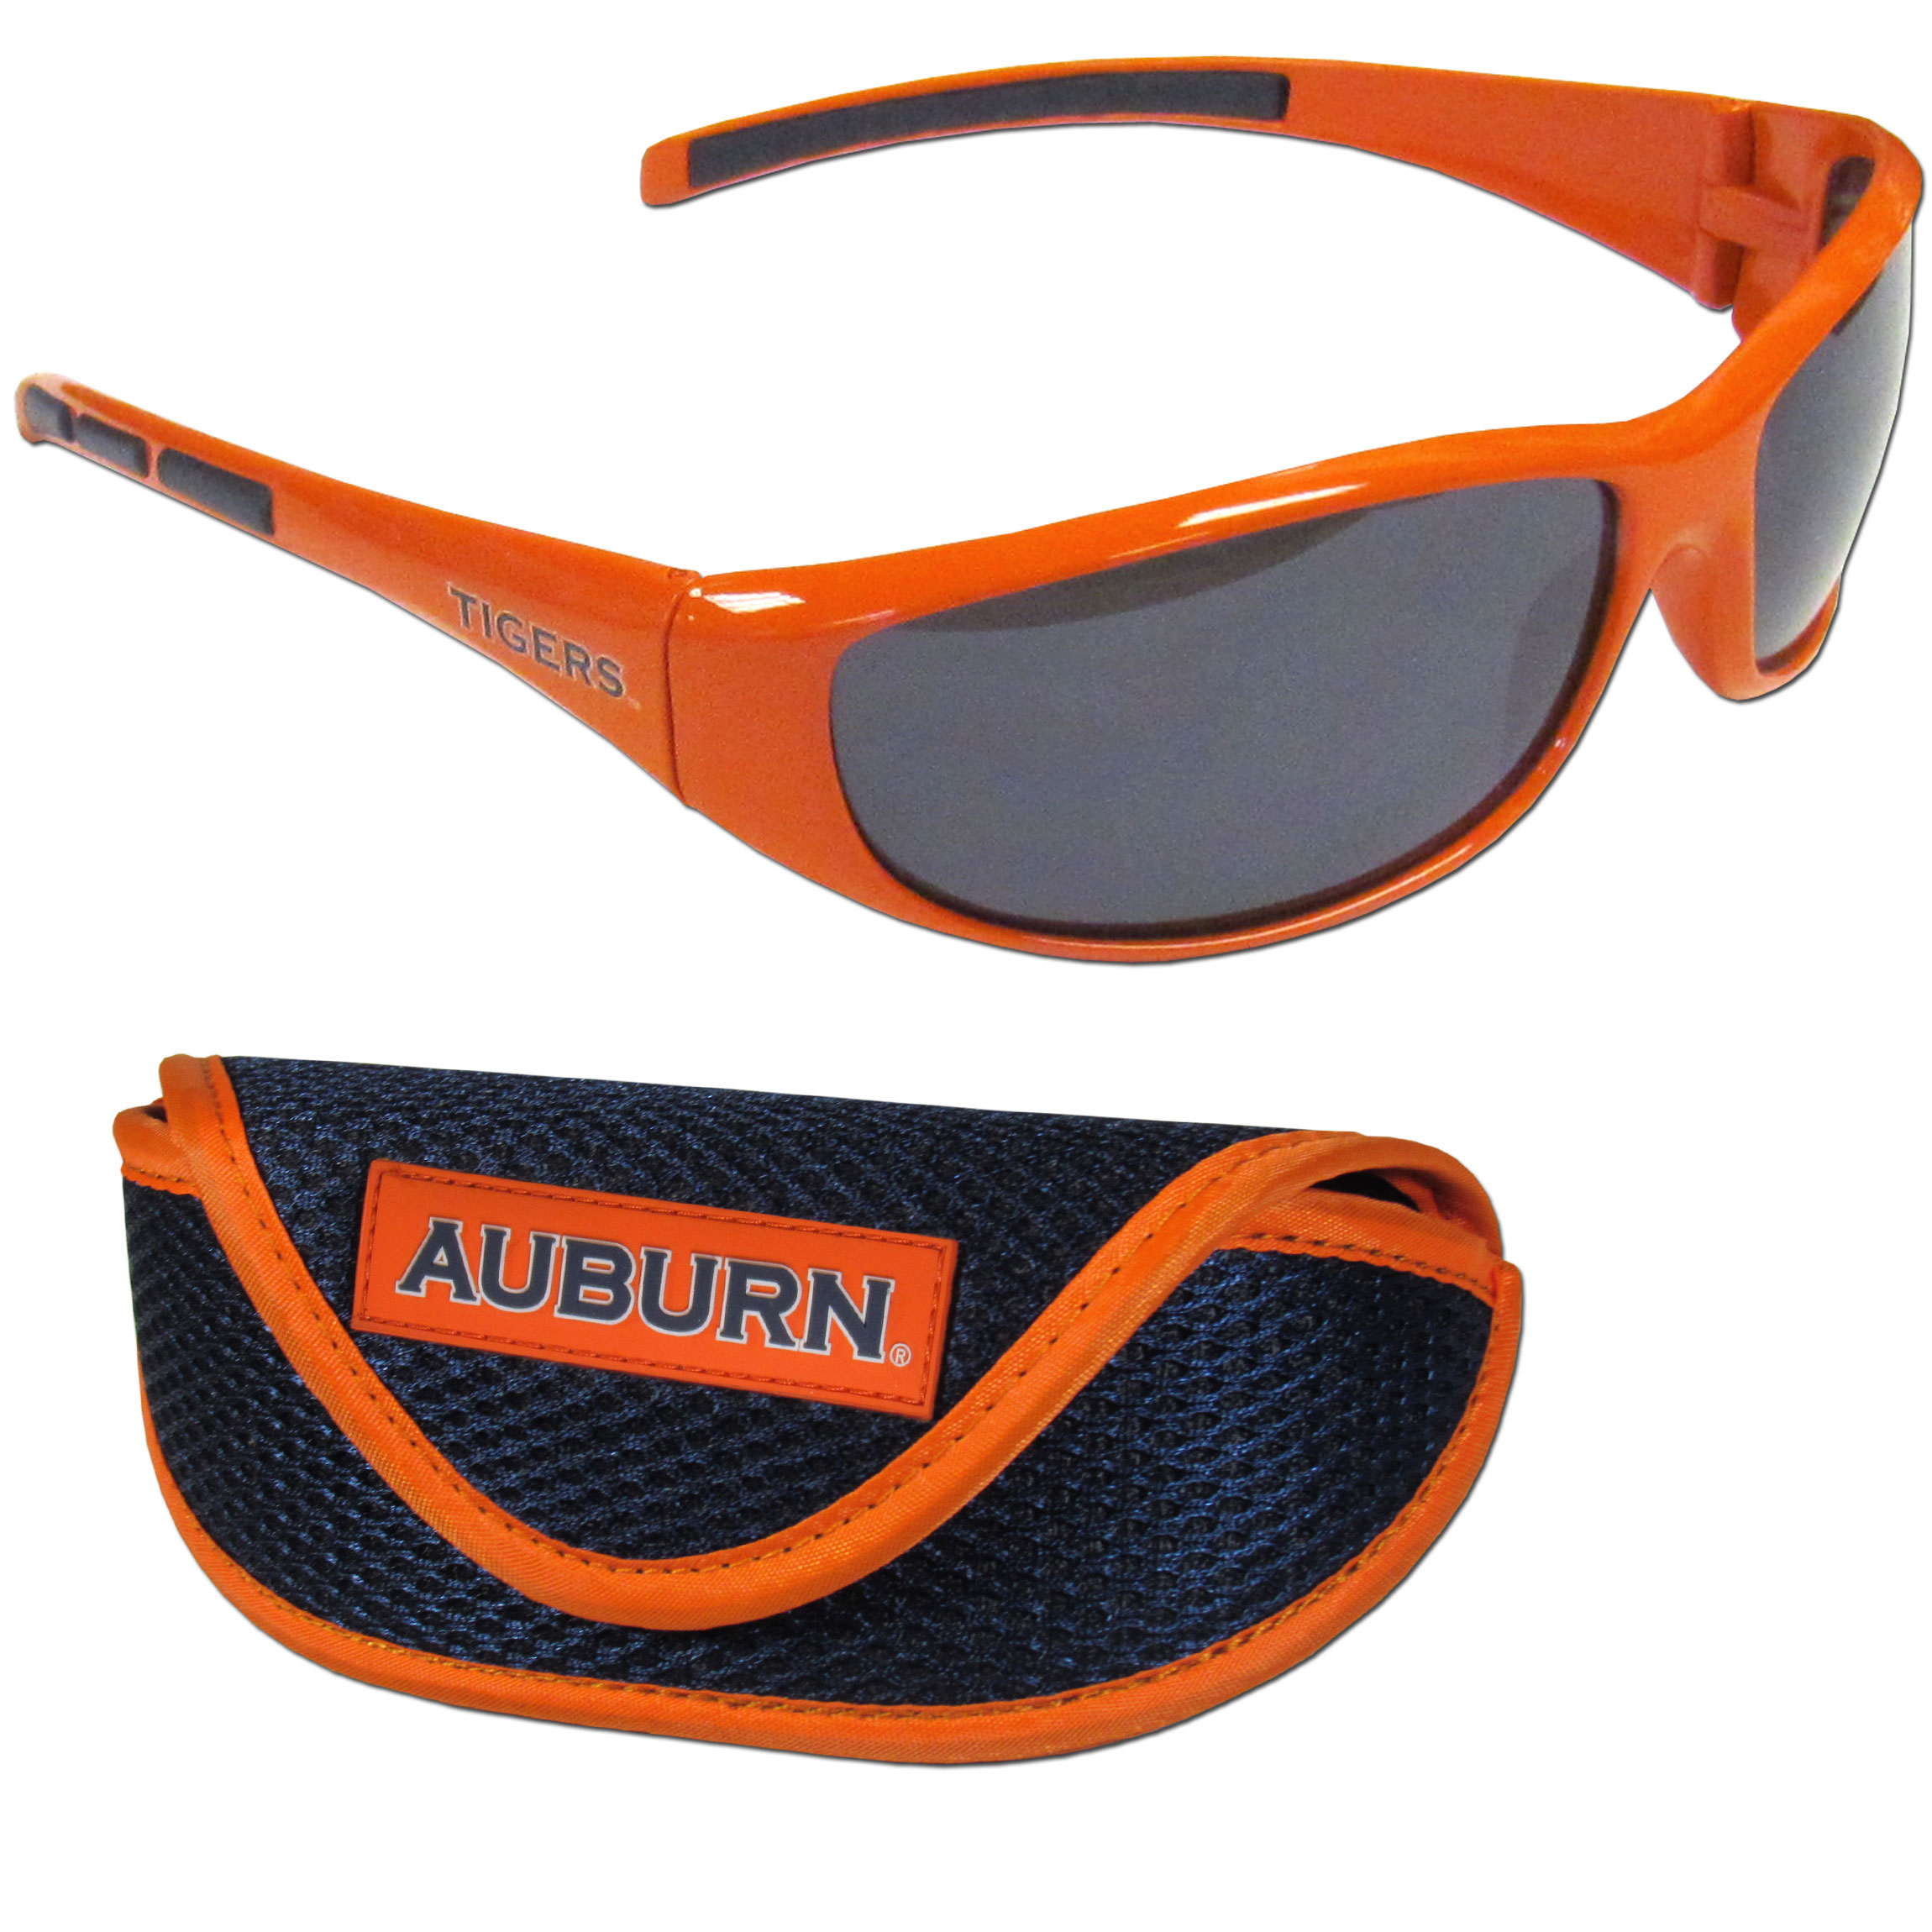 Auburn Tigers Wrap Sunglass and Case Set - This great set includes a high quality pair of Auburn Tigers wrap sunglasses and soft sport carrying case.